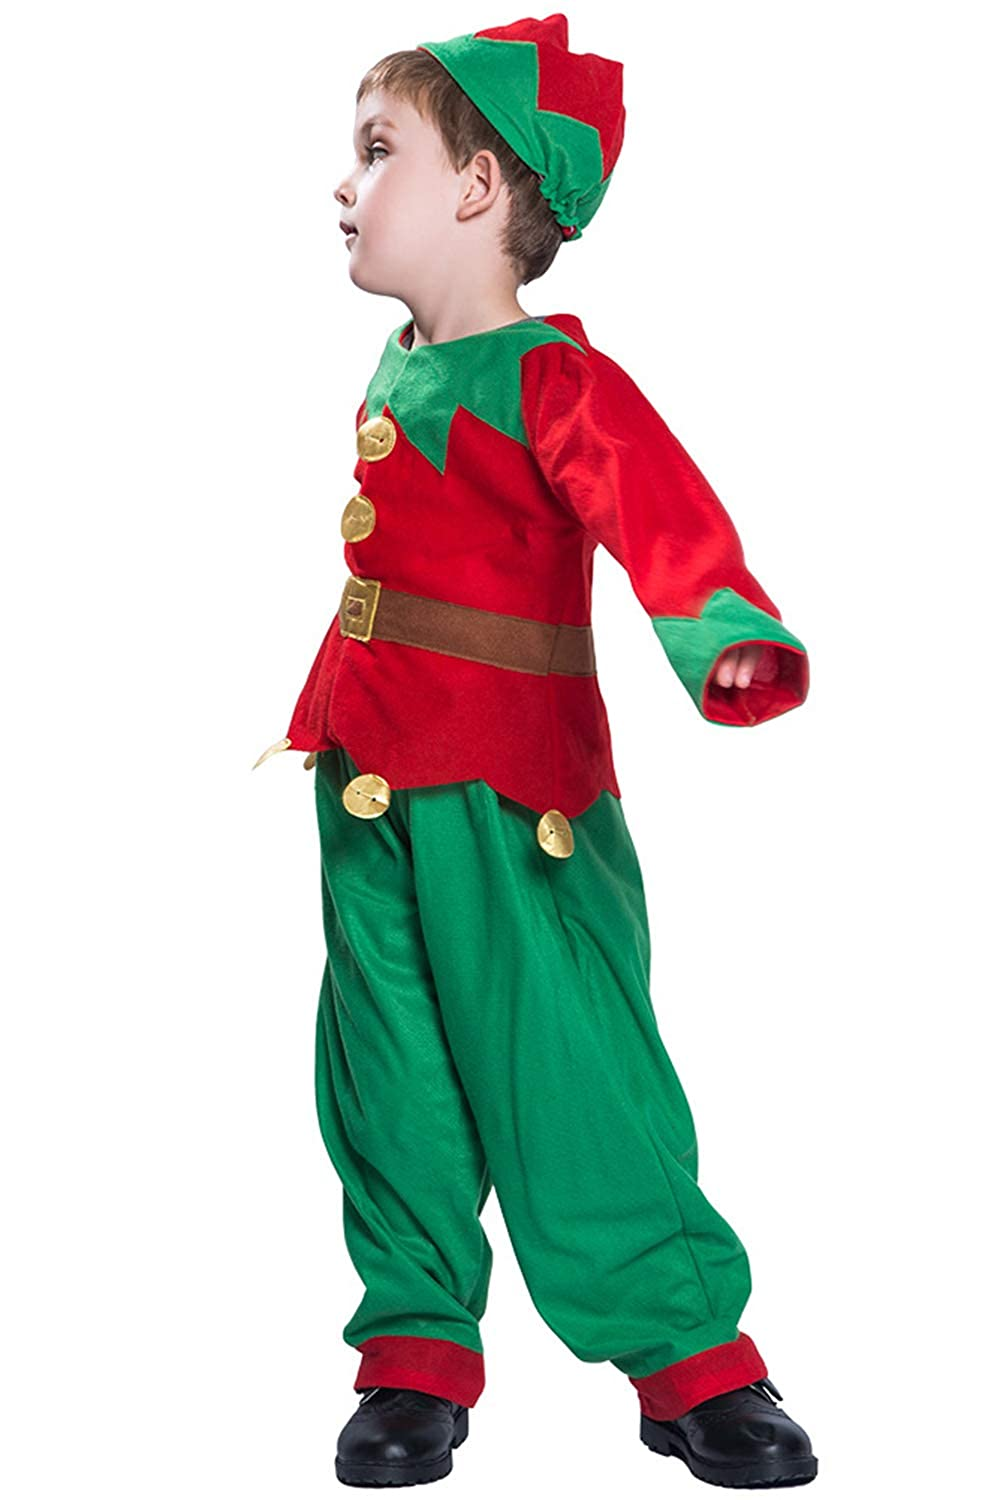 Elf Costume for Kids 3 Pcs Holiday Christmas Elf Outfit